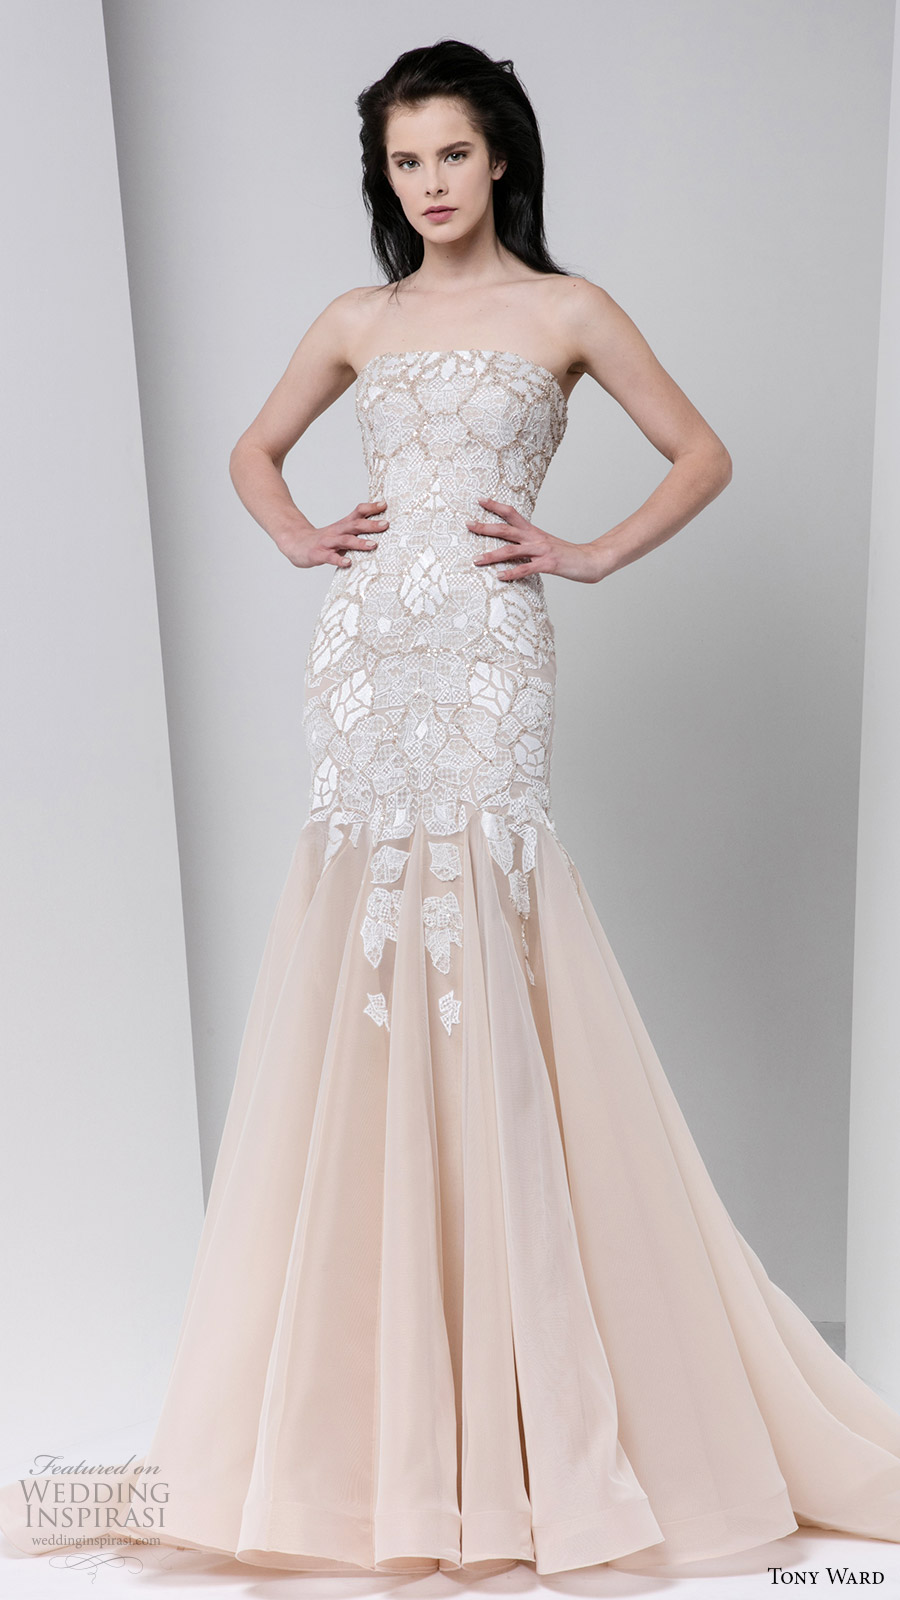 Tony Ward Fall Winter 2016 2017 Rtw Strapless A Line Off White Evening Dress Wedding Inspiration